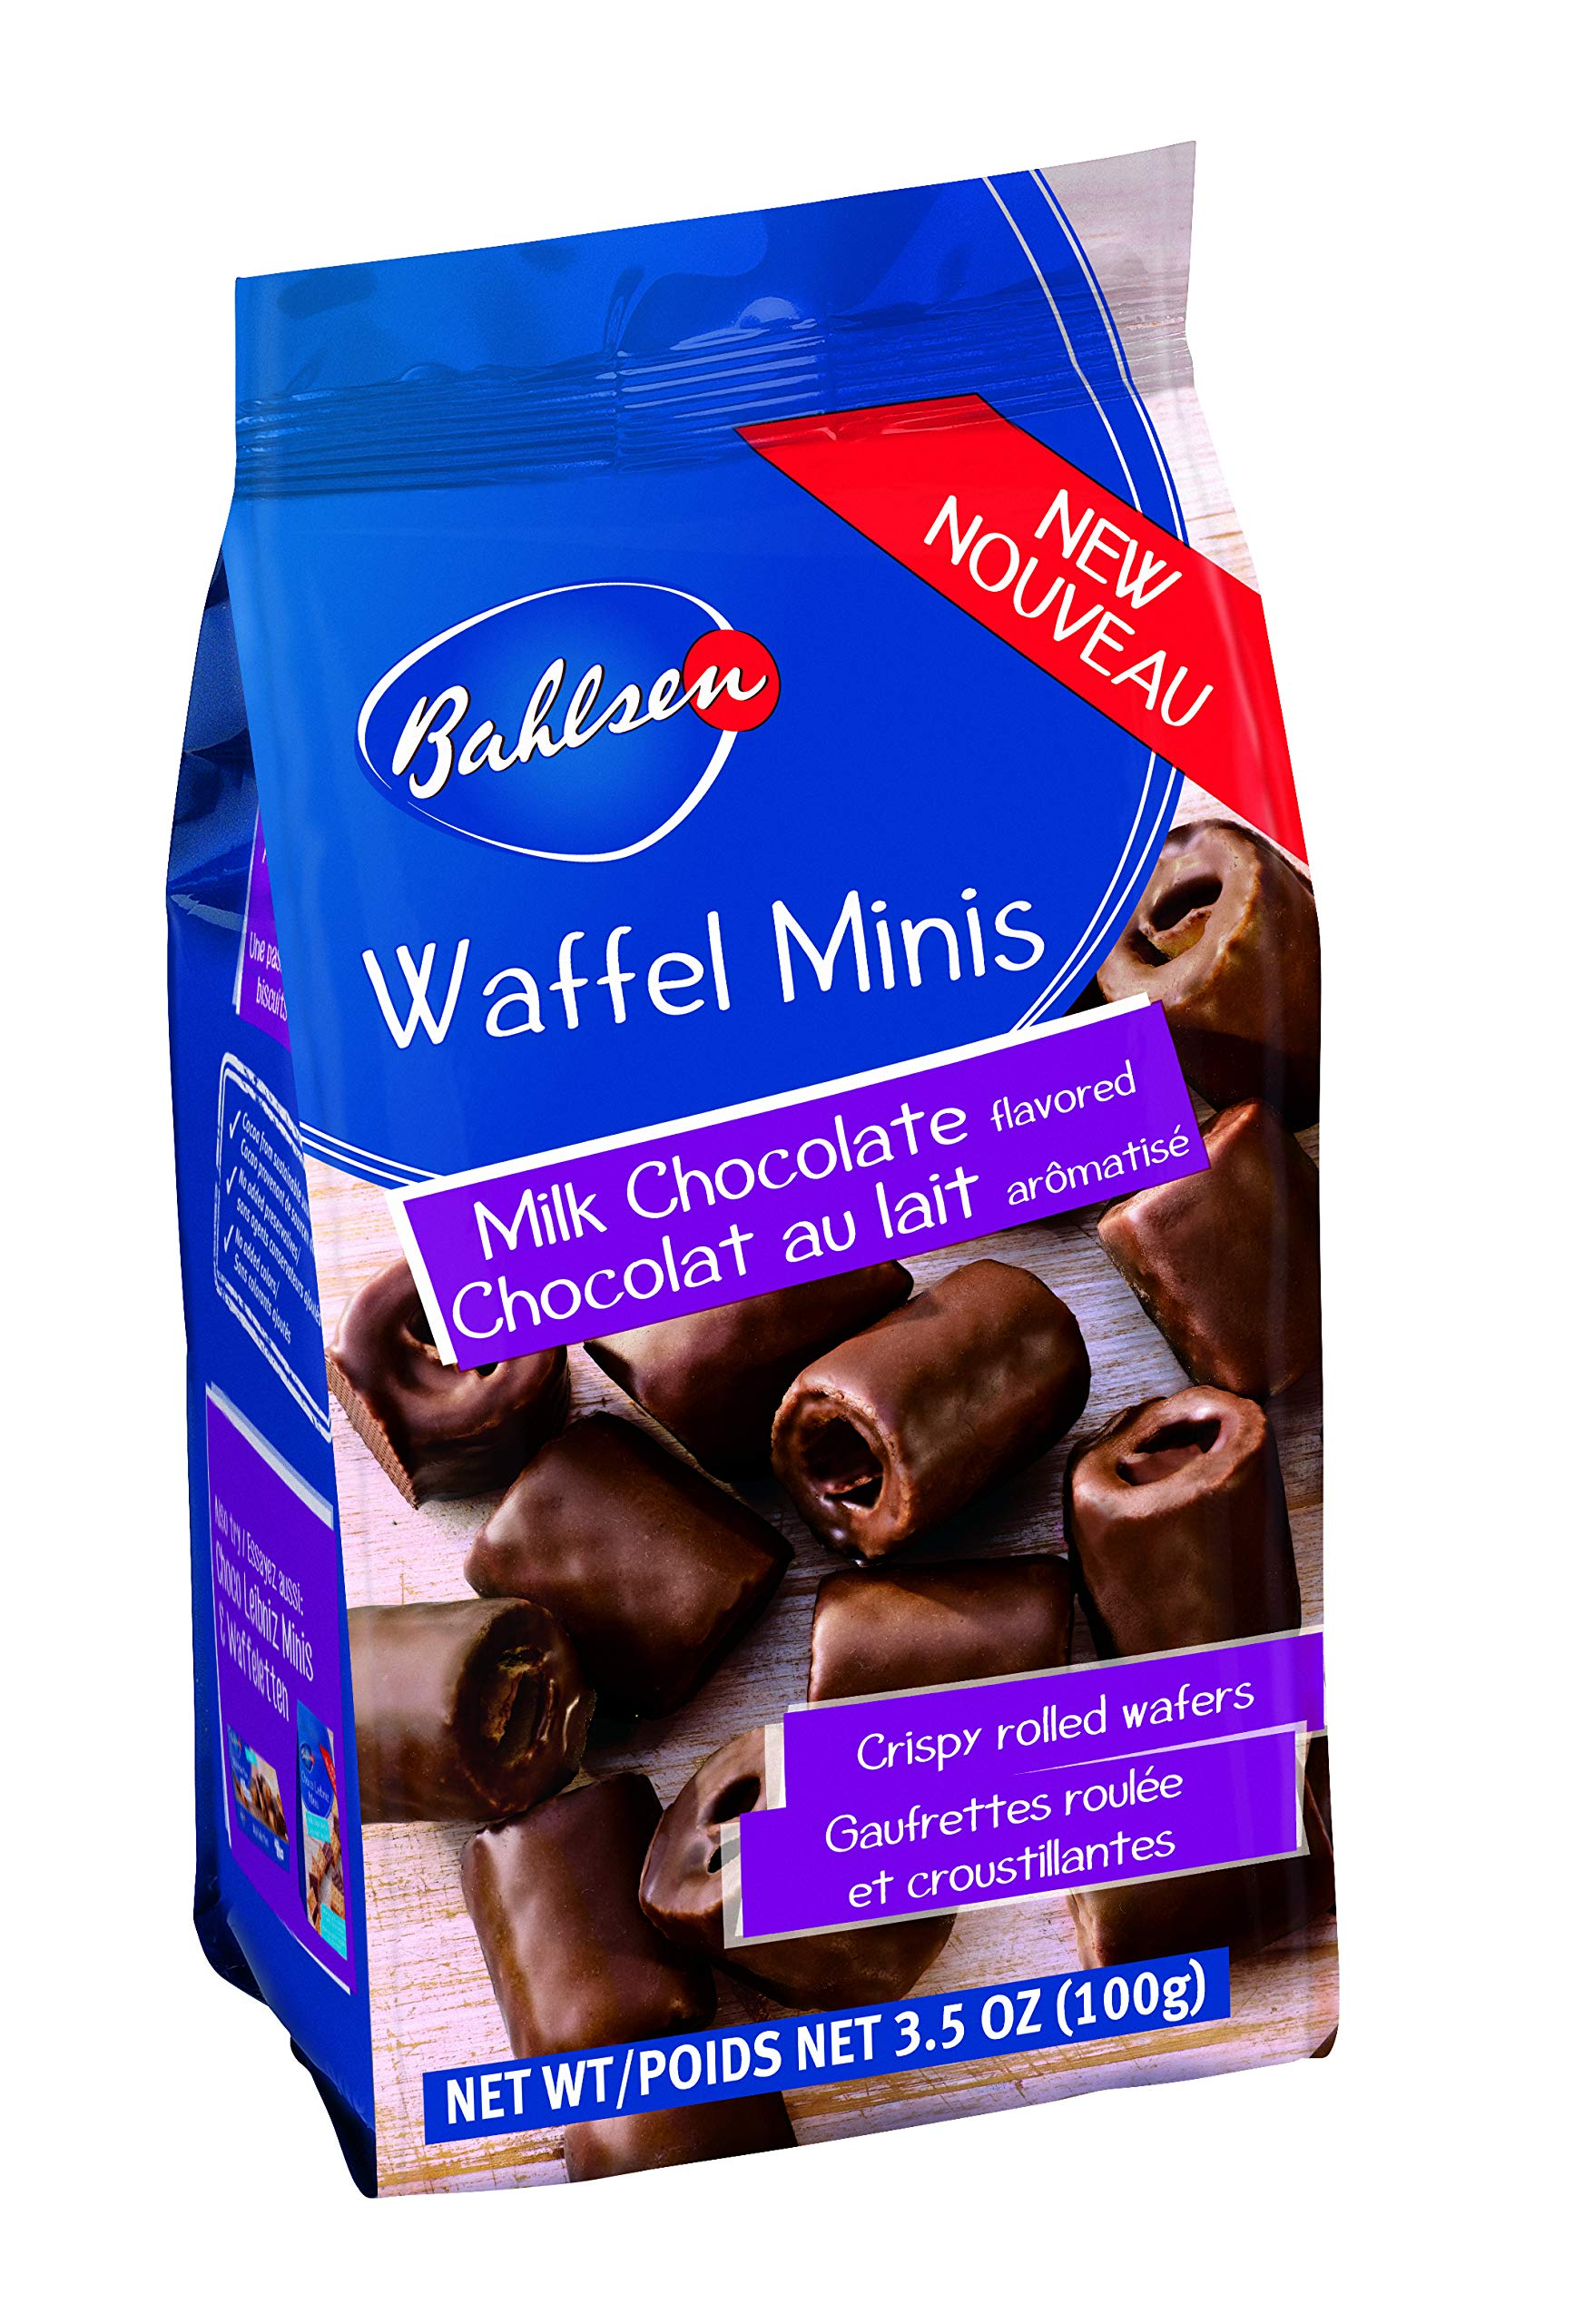 Bahlsen Waffeletten Milk Minis (1 bag) - Delicate Wafer Rolls dipped in European Chocolate - 3.5 oz bags by Bahlsen